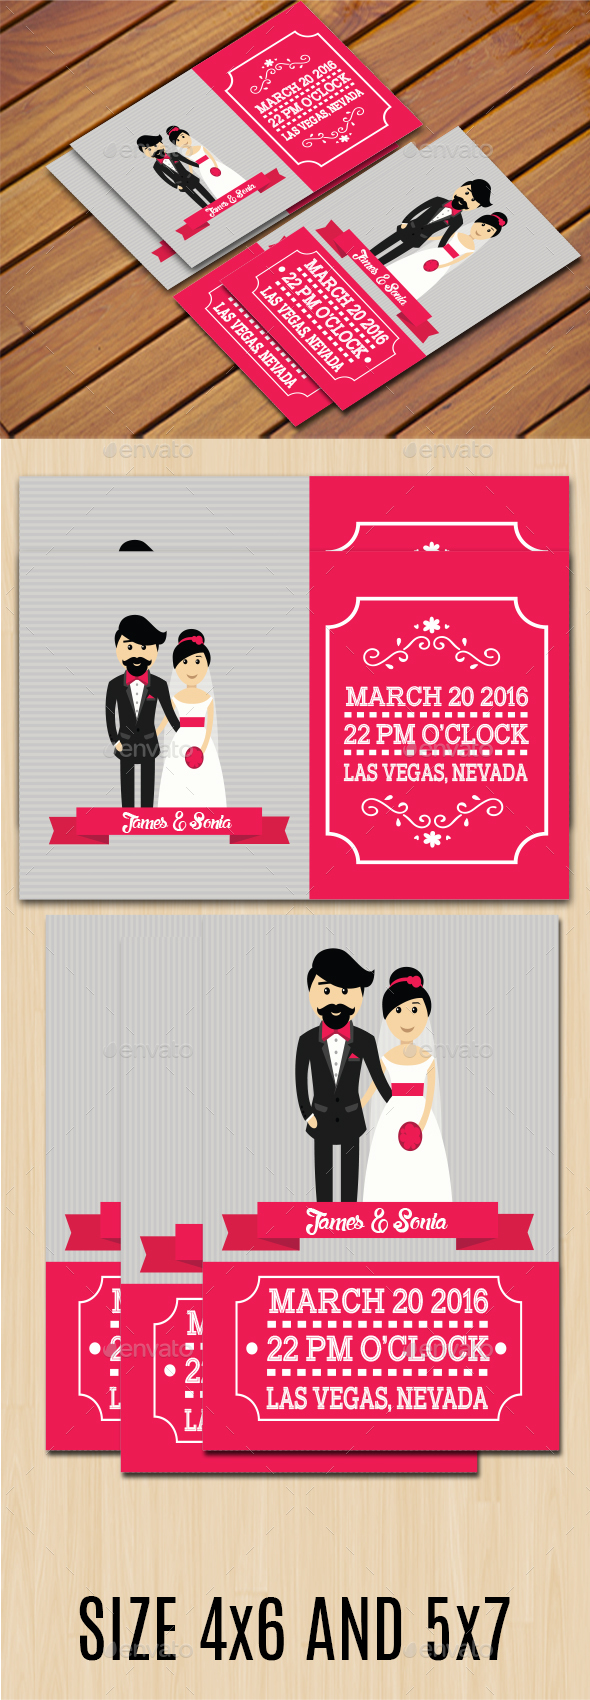 Simple Wedding Invitation II (Two Size)